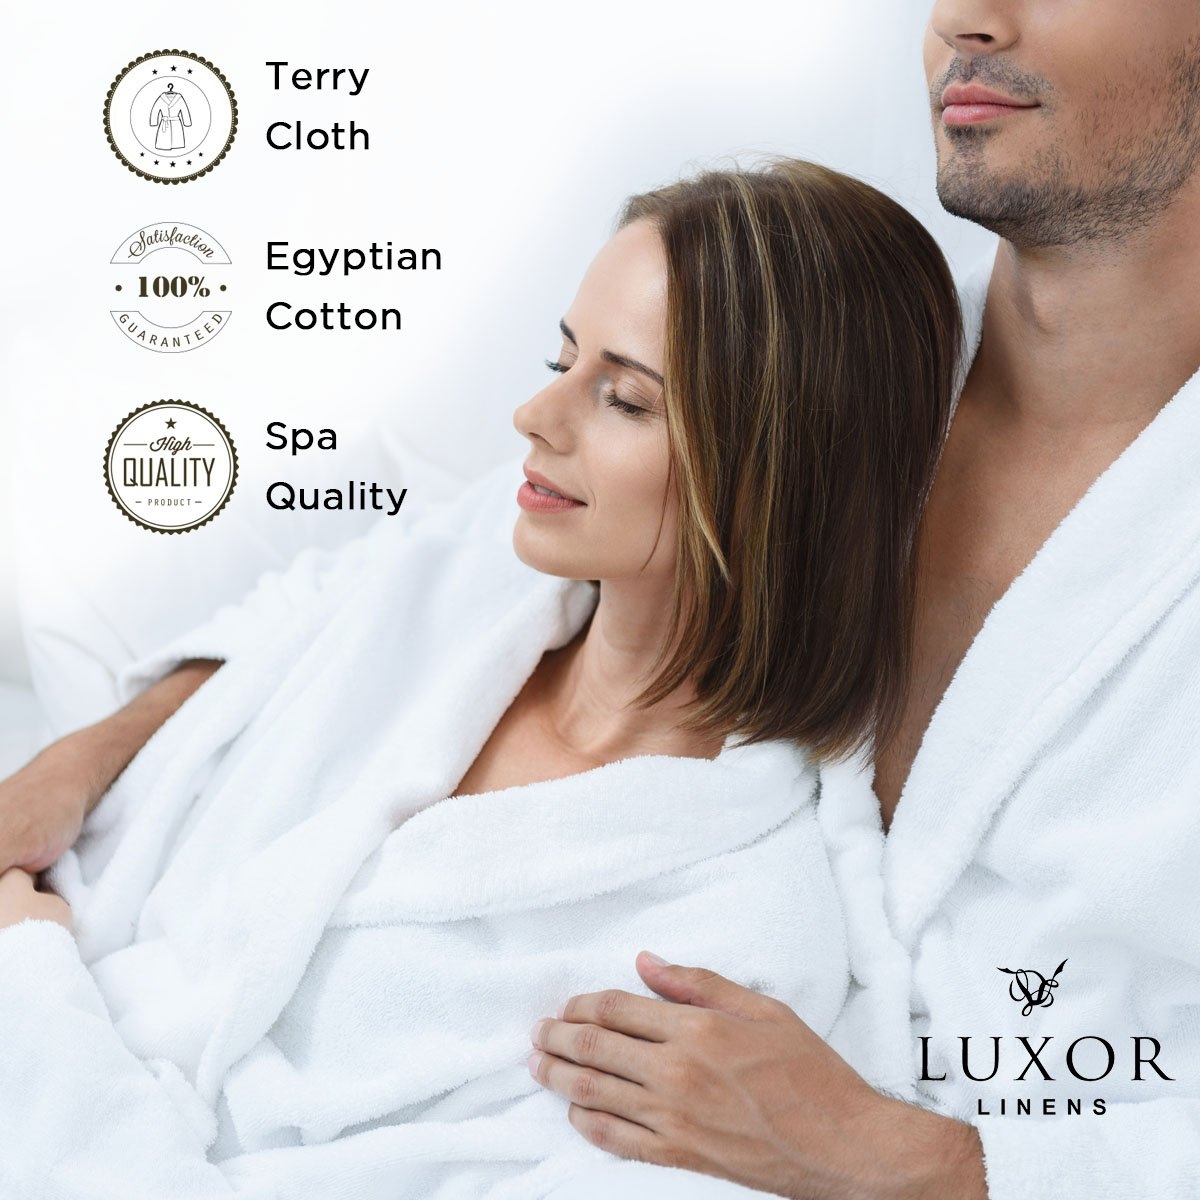 Luxor Linens - Terry Cloth Bathrobes - 100% Egyptian Cotton Mr.& Mrs. Bathrobe Set - Luxurious, Soft, Plush Durable Set of Robes by Luxor Linens (Image #5)